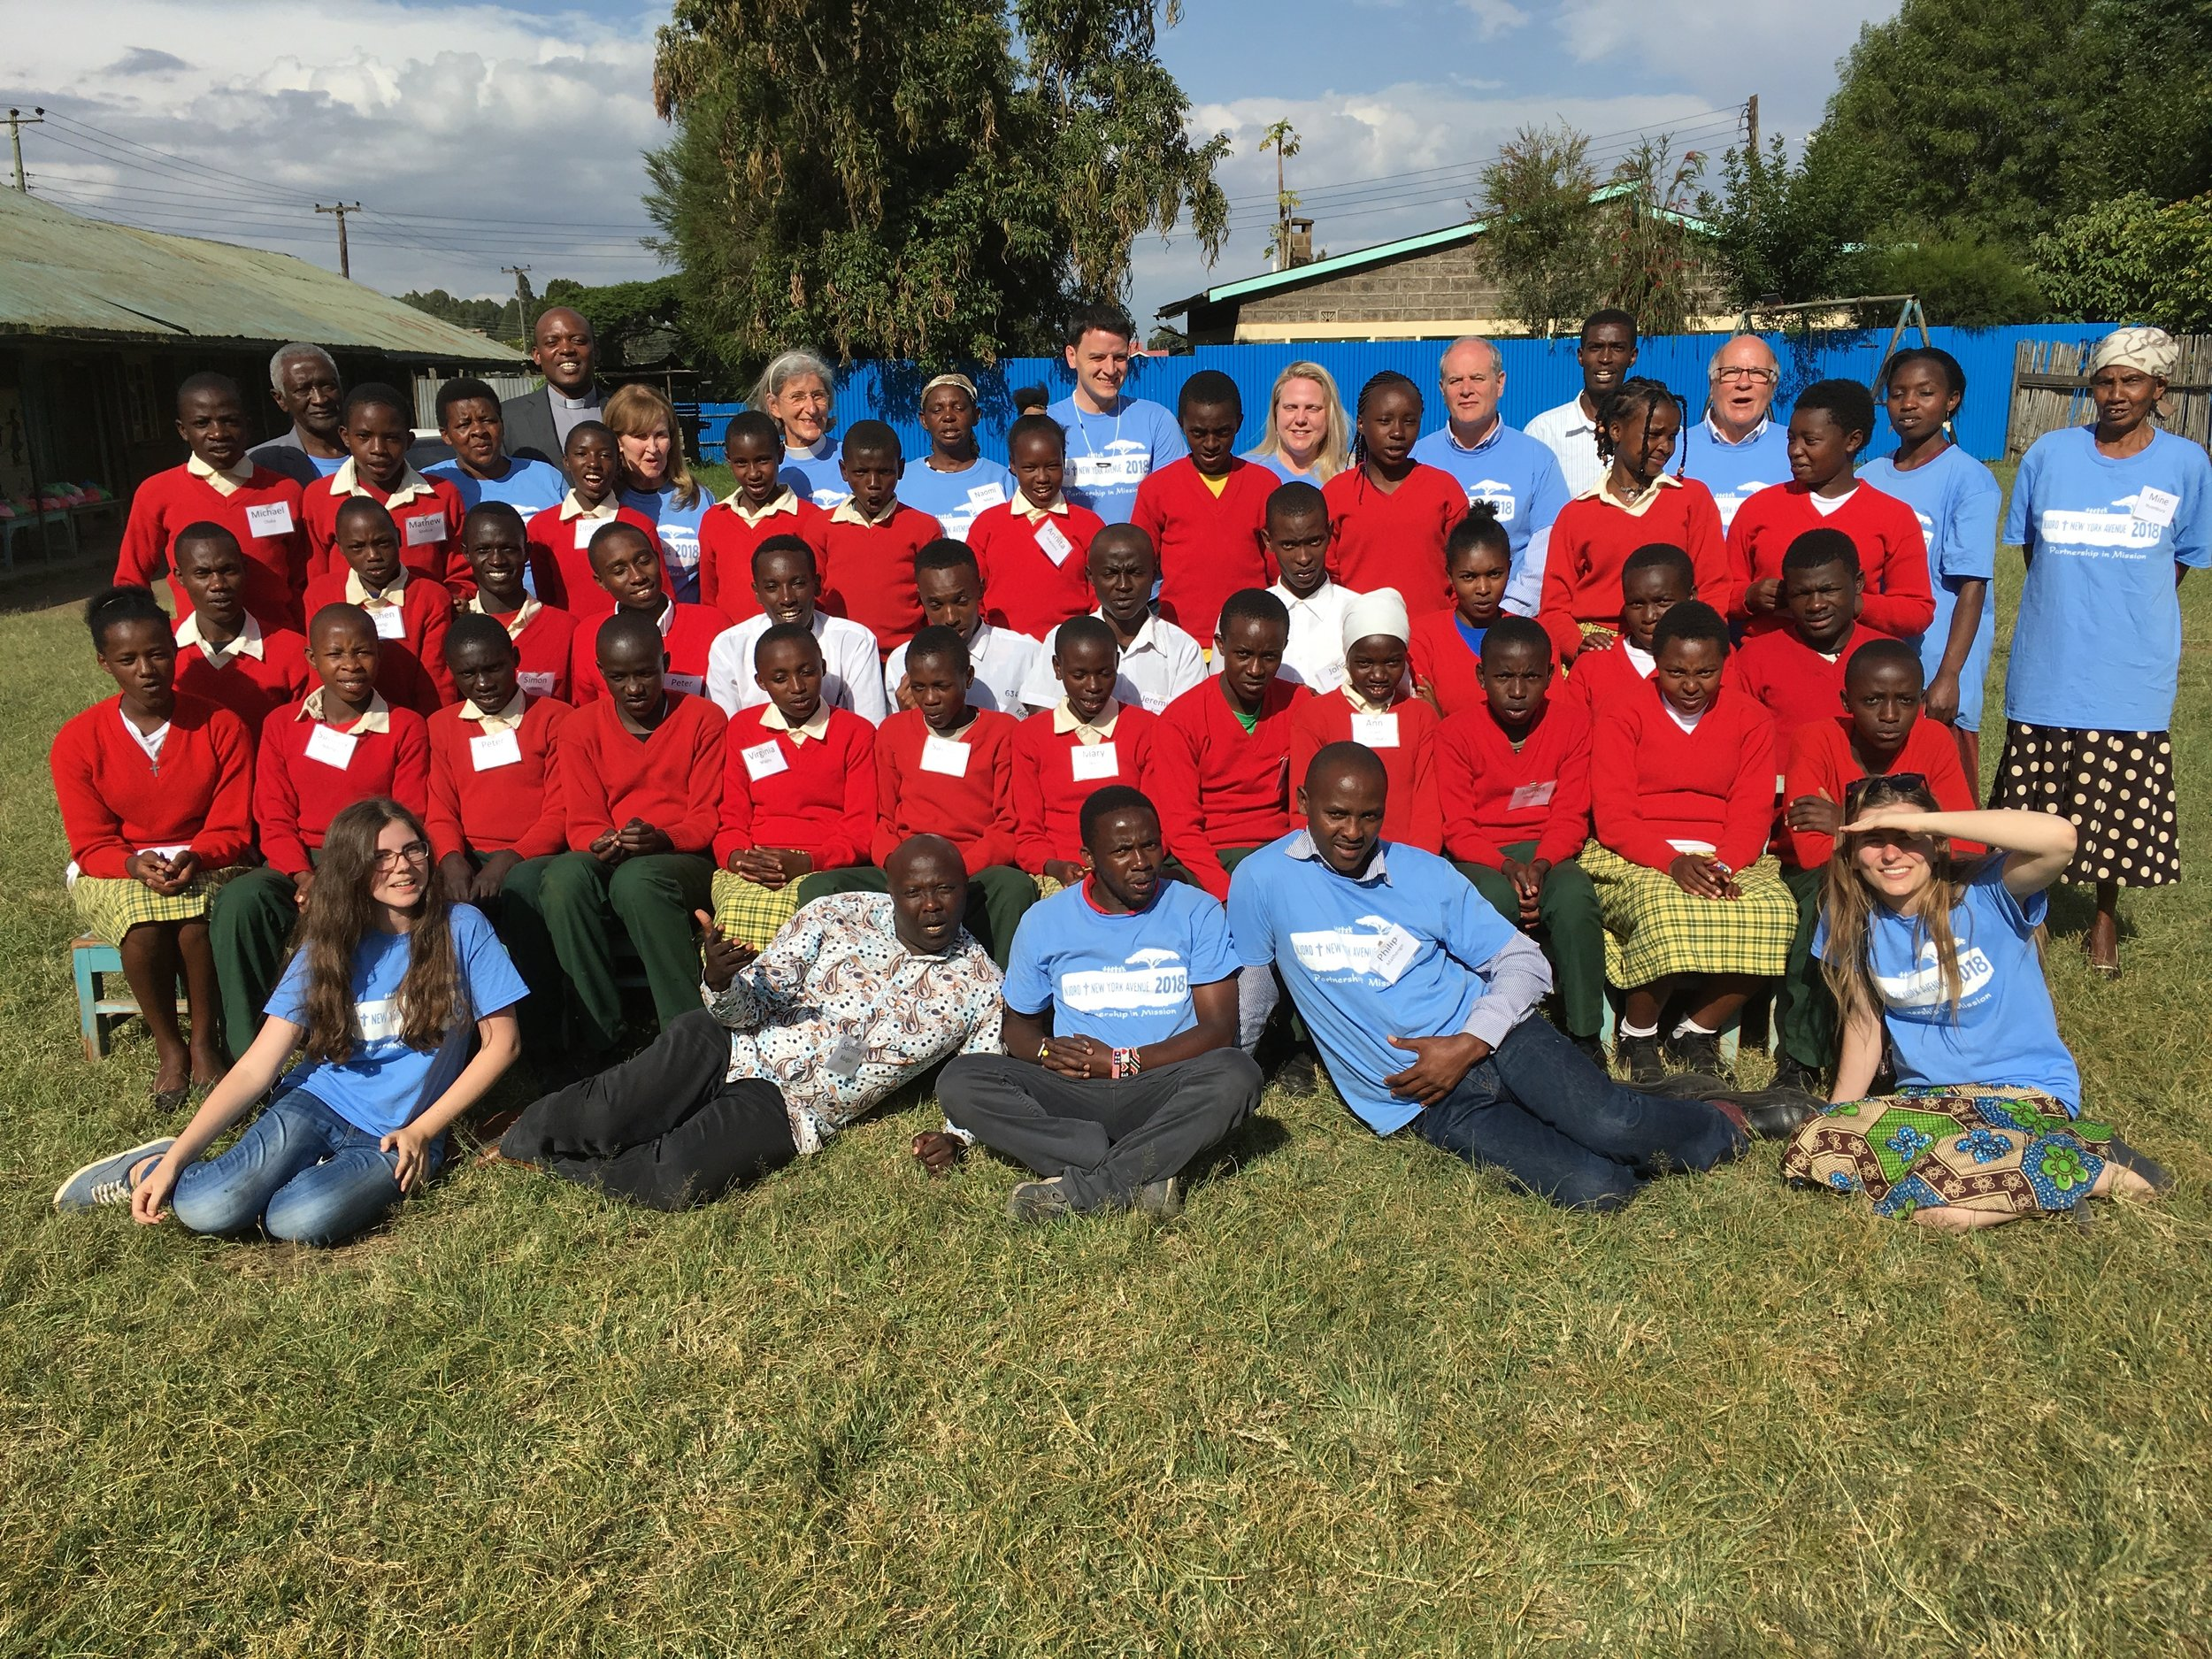 Orphan and Vulnerable Children - 2018 Njoro Mission Trip - A mission group from New York Avenue Presbyterian Church in Washington, DC completed a trip to Njoro, Kenya in August of 2018. The Orphan and Vulnerable Children program supports children in Njoro with housing, schooling, and spiritual support. Nine travelers participated with the students in worship, Vacation Bible School, and fellowship. Gifts were provided for all the students, and the group re-connected with four students who had visited Washington in 2017. For more information, read this report provided by Rev. Beth Braxton: Report of 2018 Njoro Mission Trip